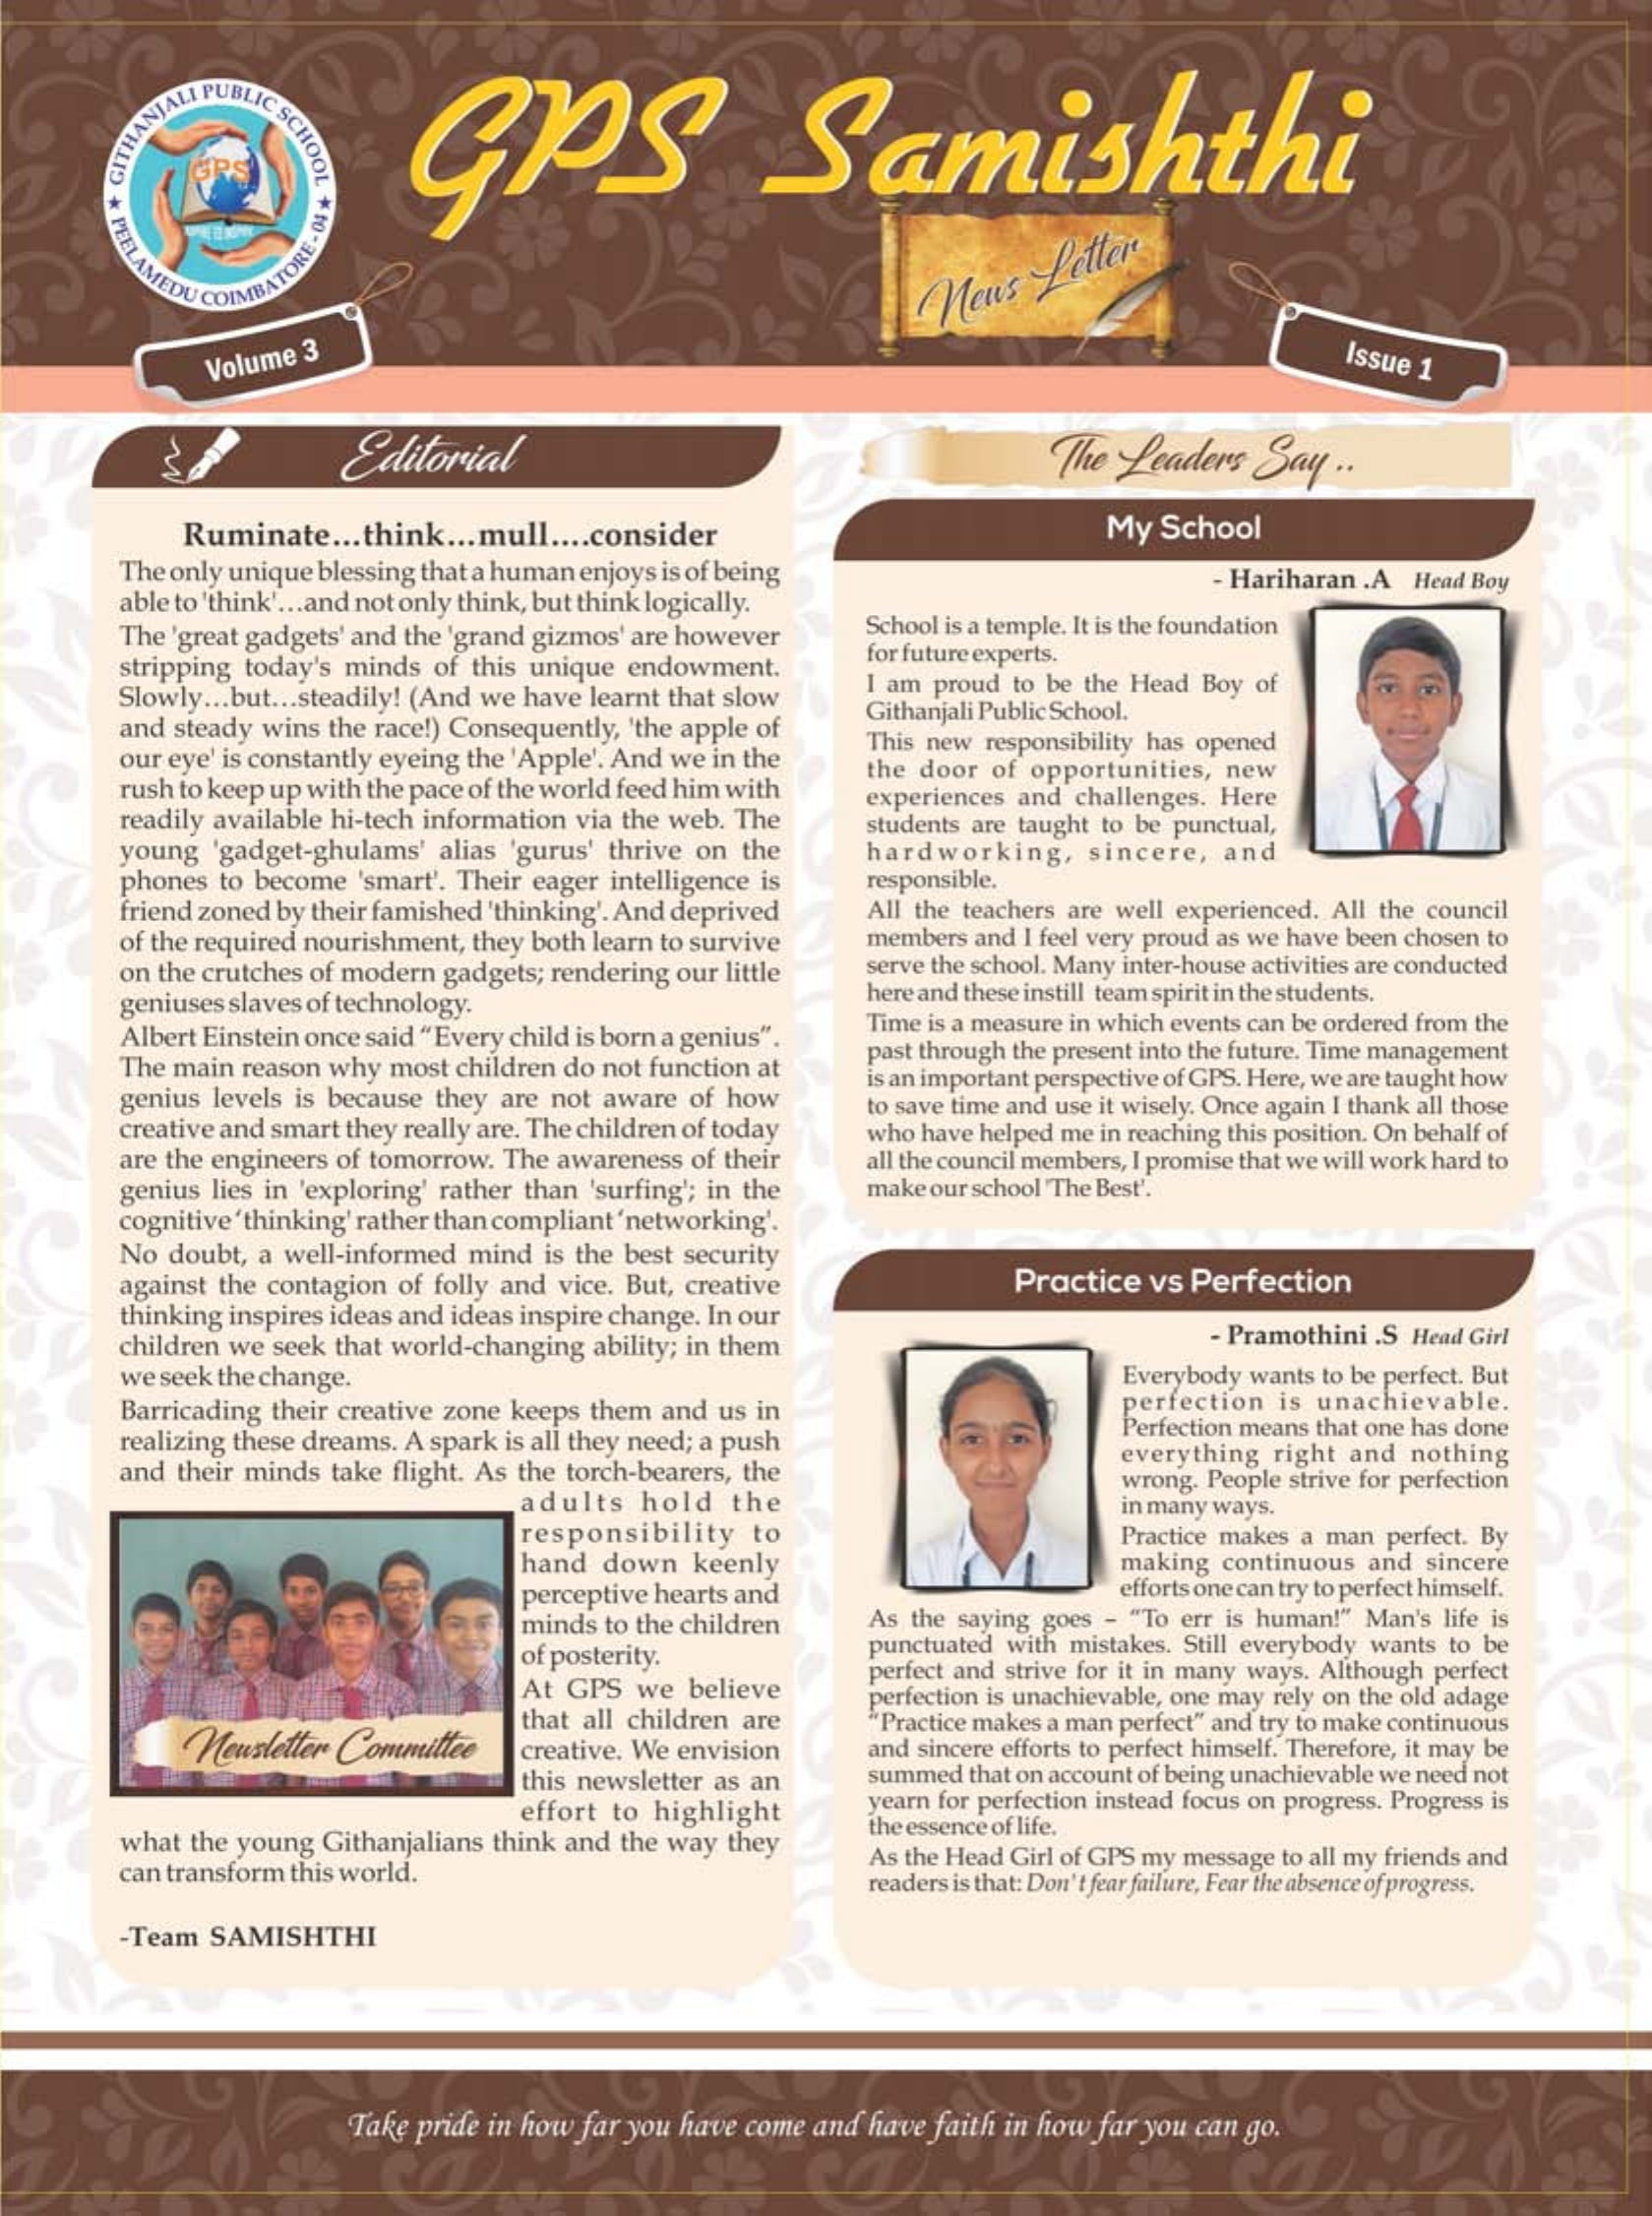 NEWSLETTER ISSUE 1 - PAGE 1